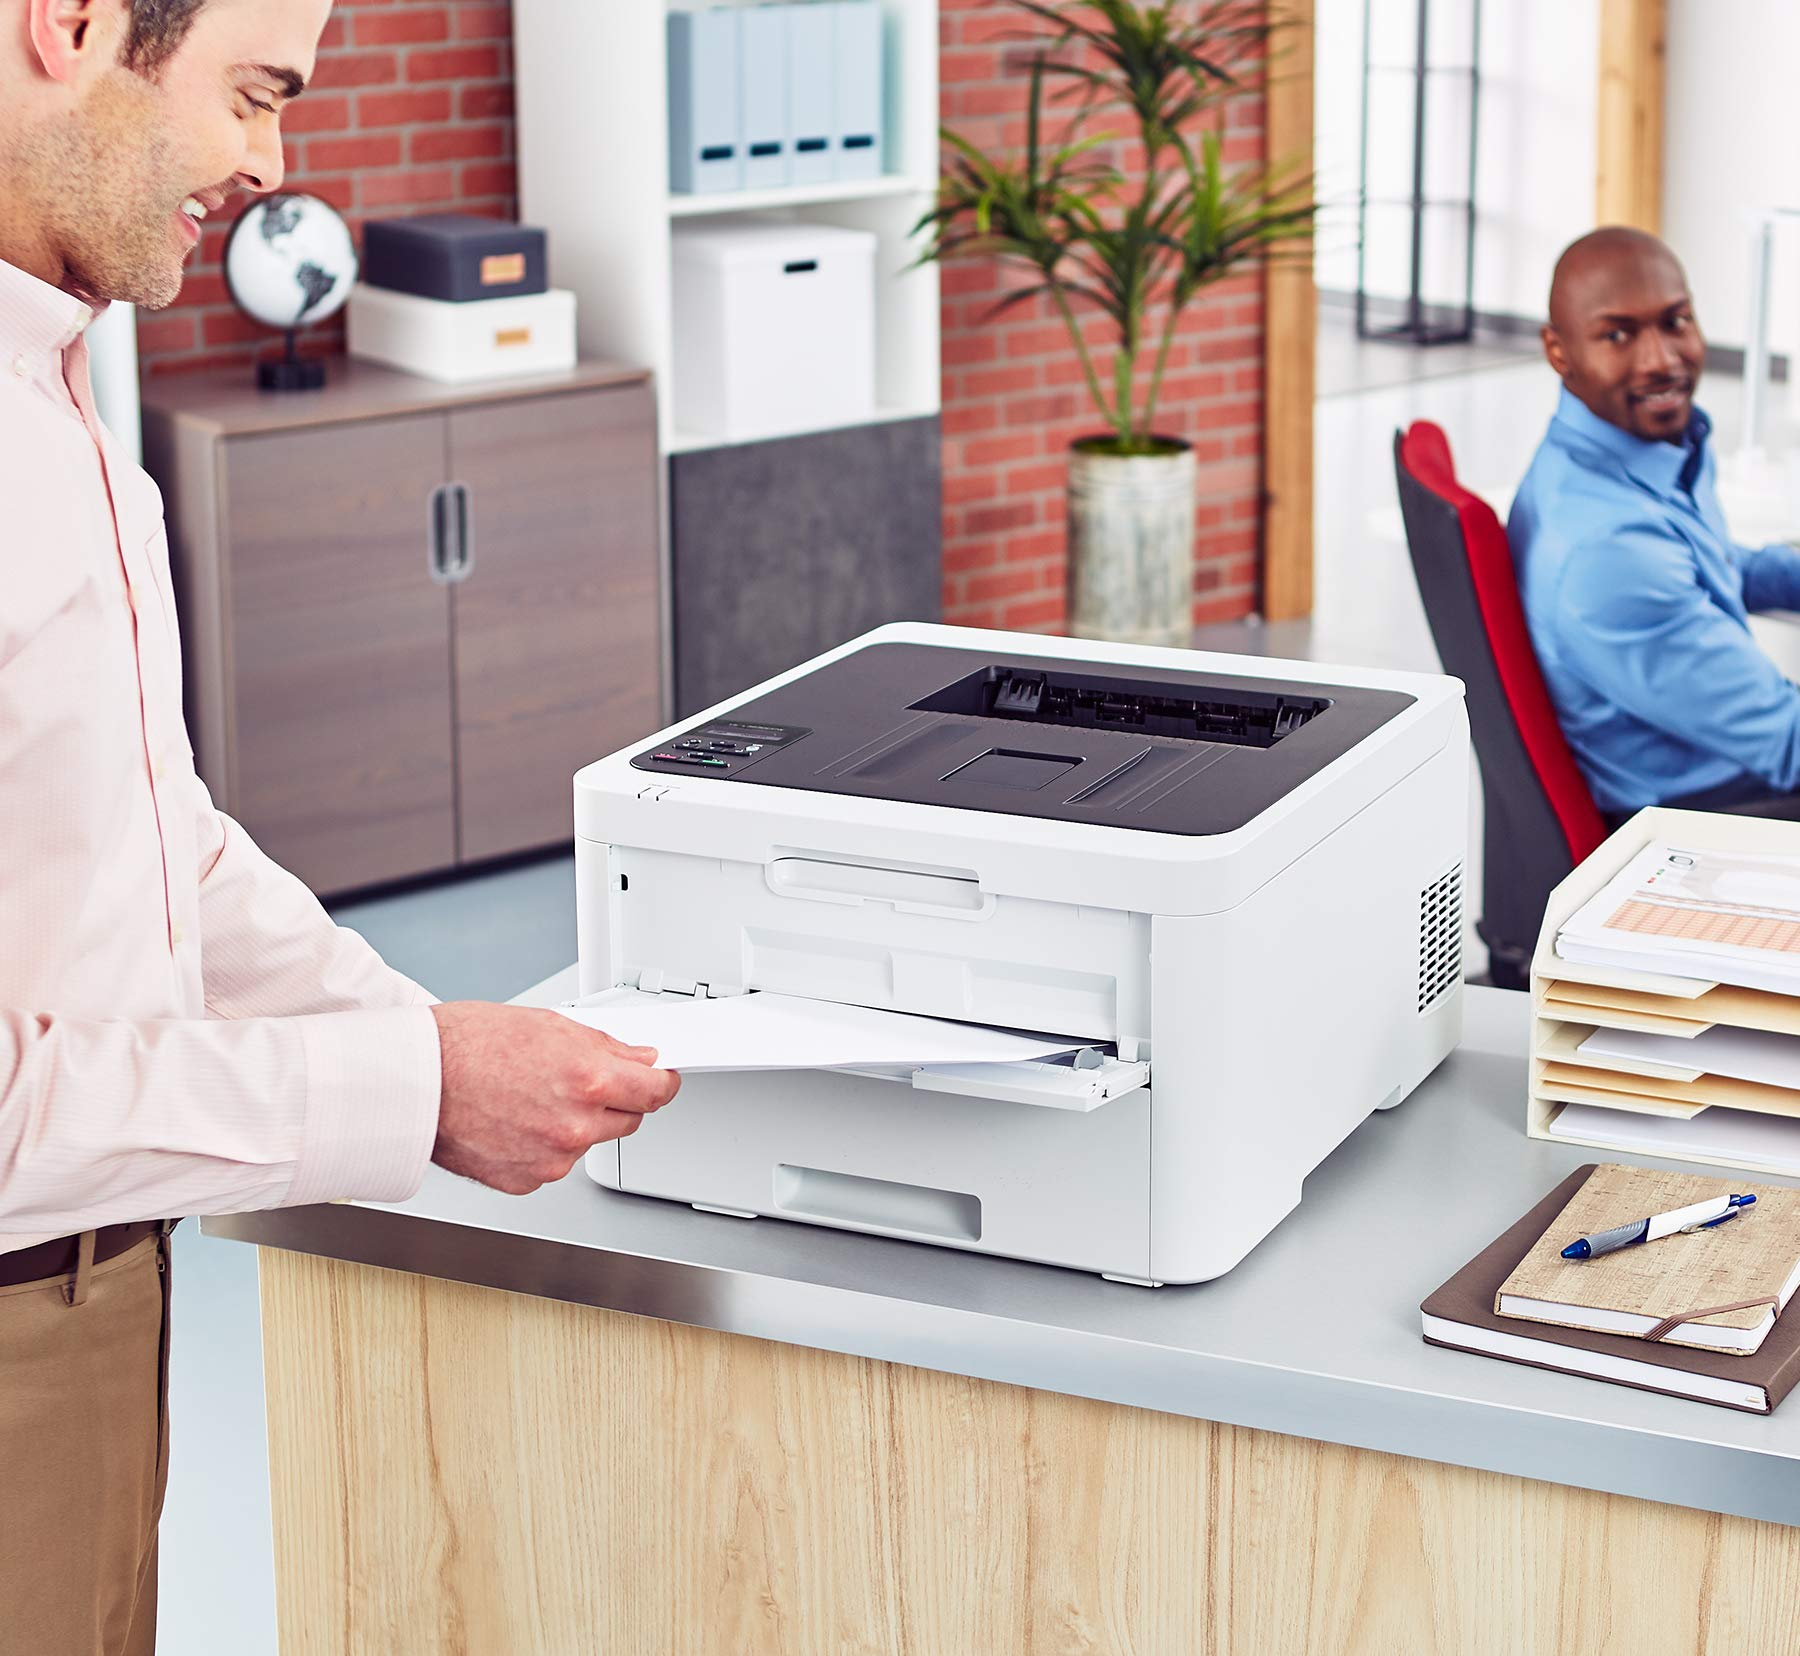 Brother HL-L3230CDW Compact Digital Color Printer Providing Laser Printer Quality Results with Wireless Printing and Duplex Printing, Amazon Dash Replenishment Enabled by Brother (Image #7)